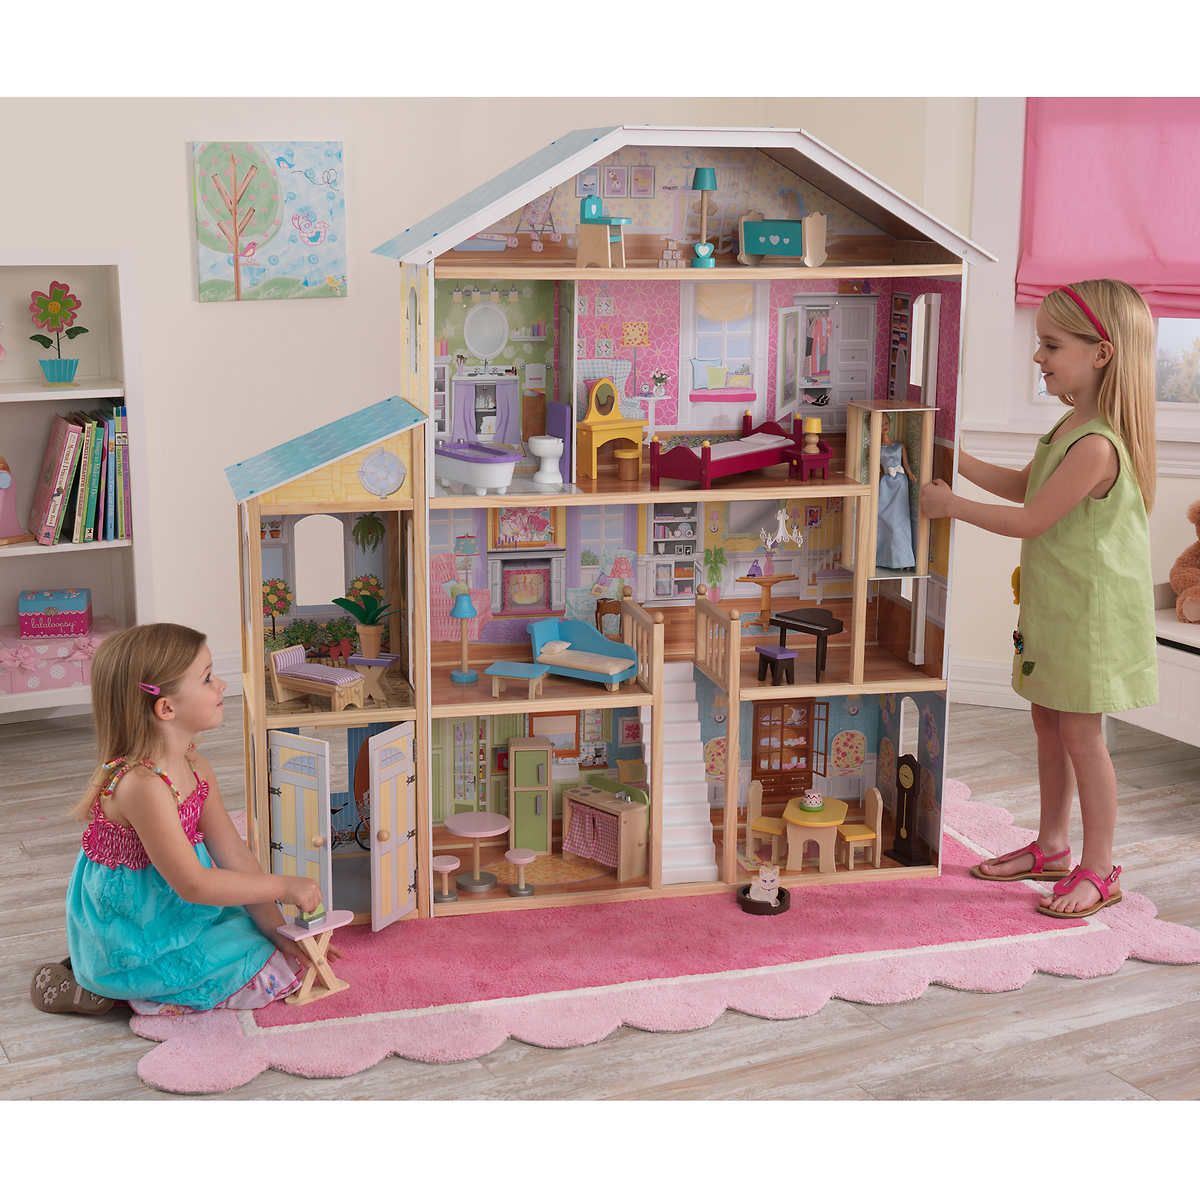 Majestic Mansion by Kidkraft - beautiful dollhouse for Barbie & Bratz Dolls